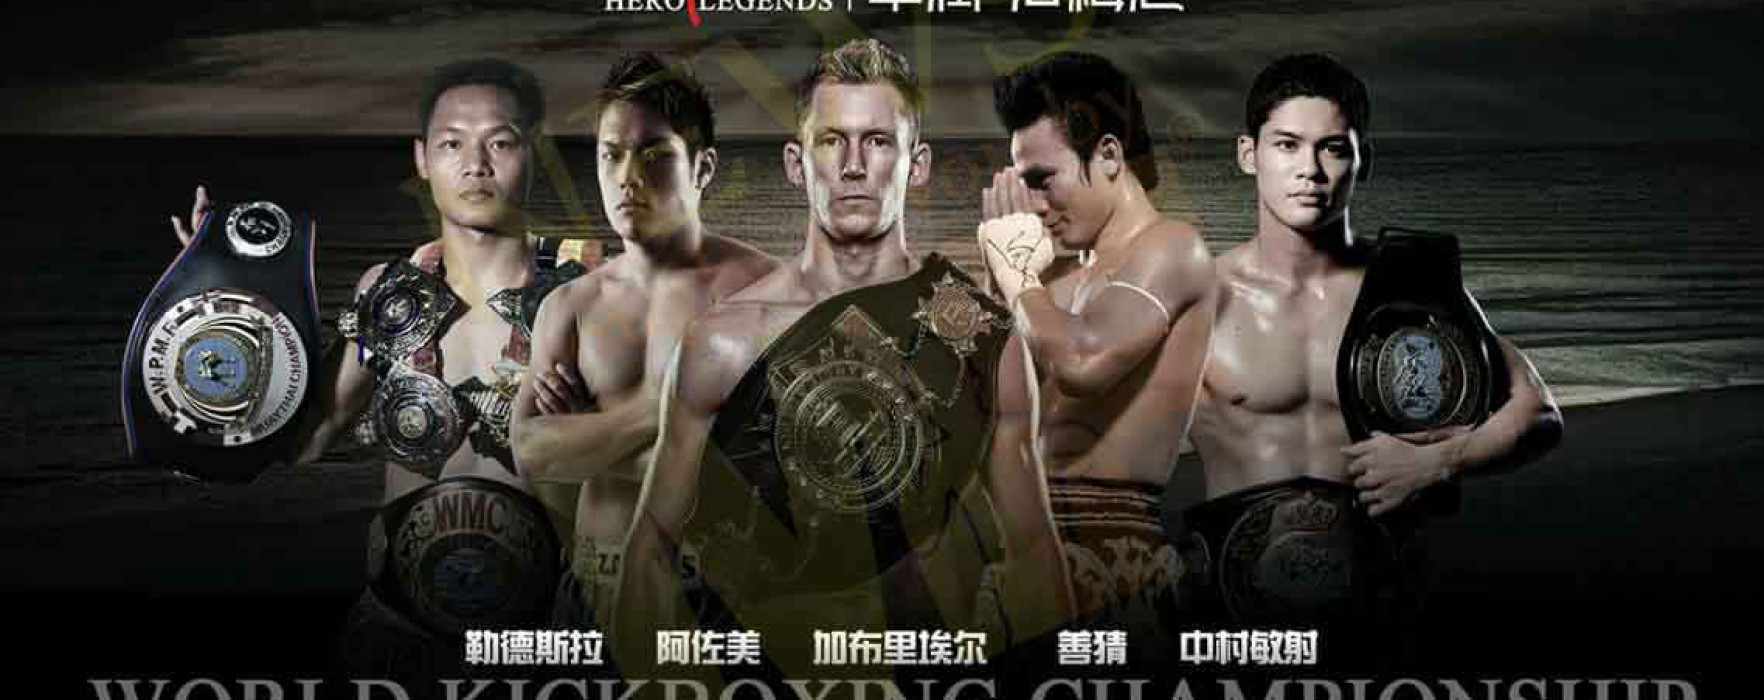 Card: Saenchai, Nakamura & Dejrit Poptheeratham at Hero Legends – China – 16/01/2016